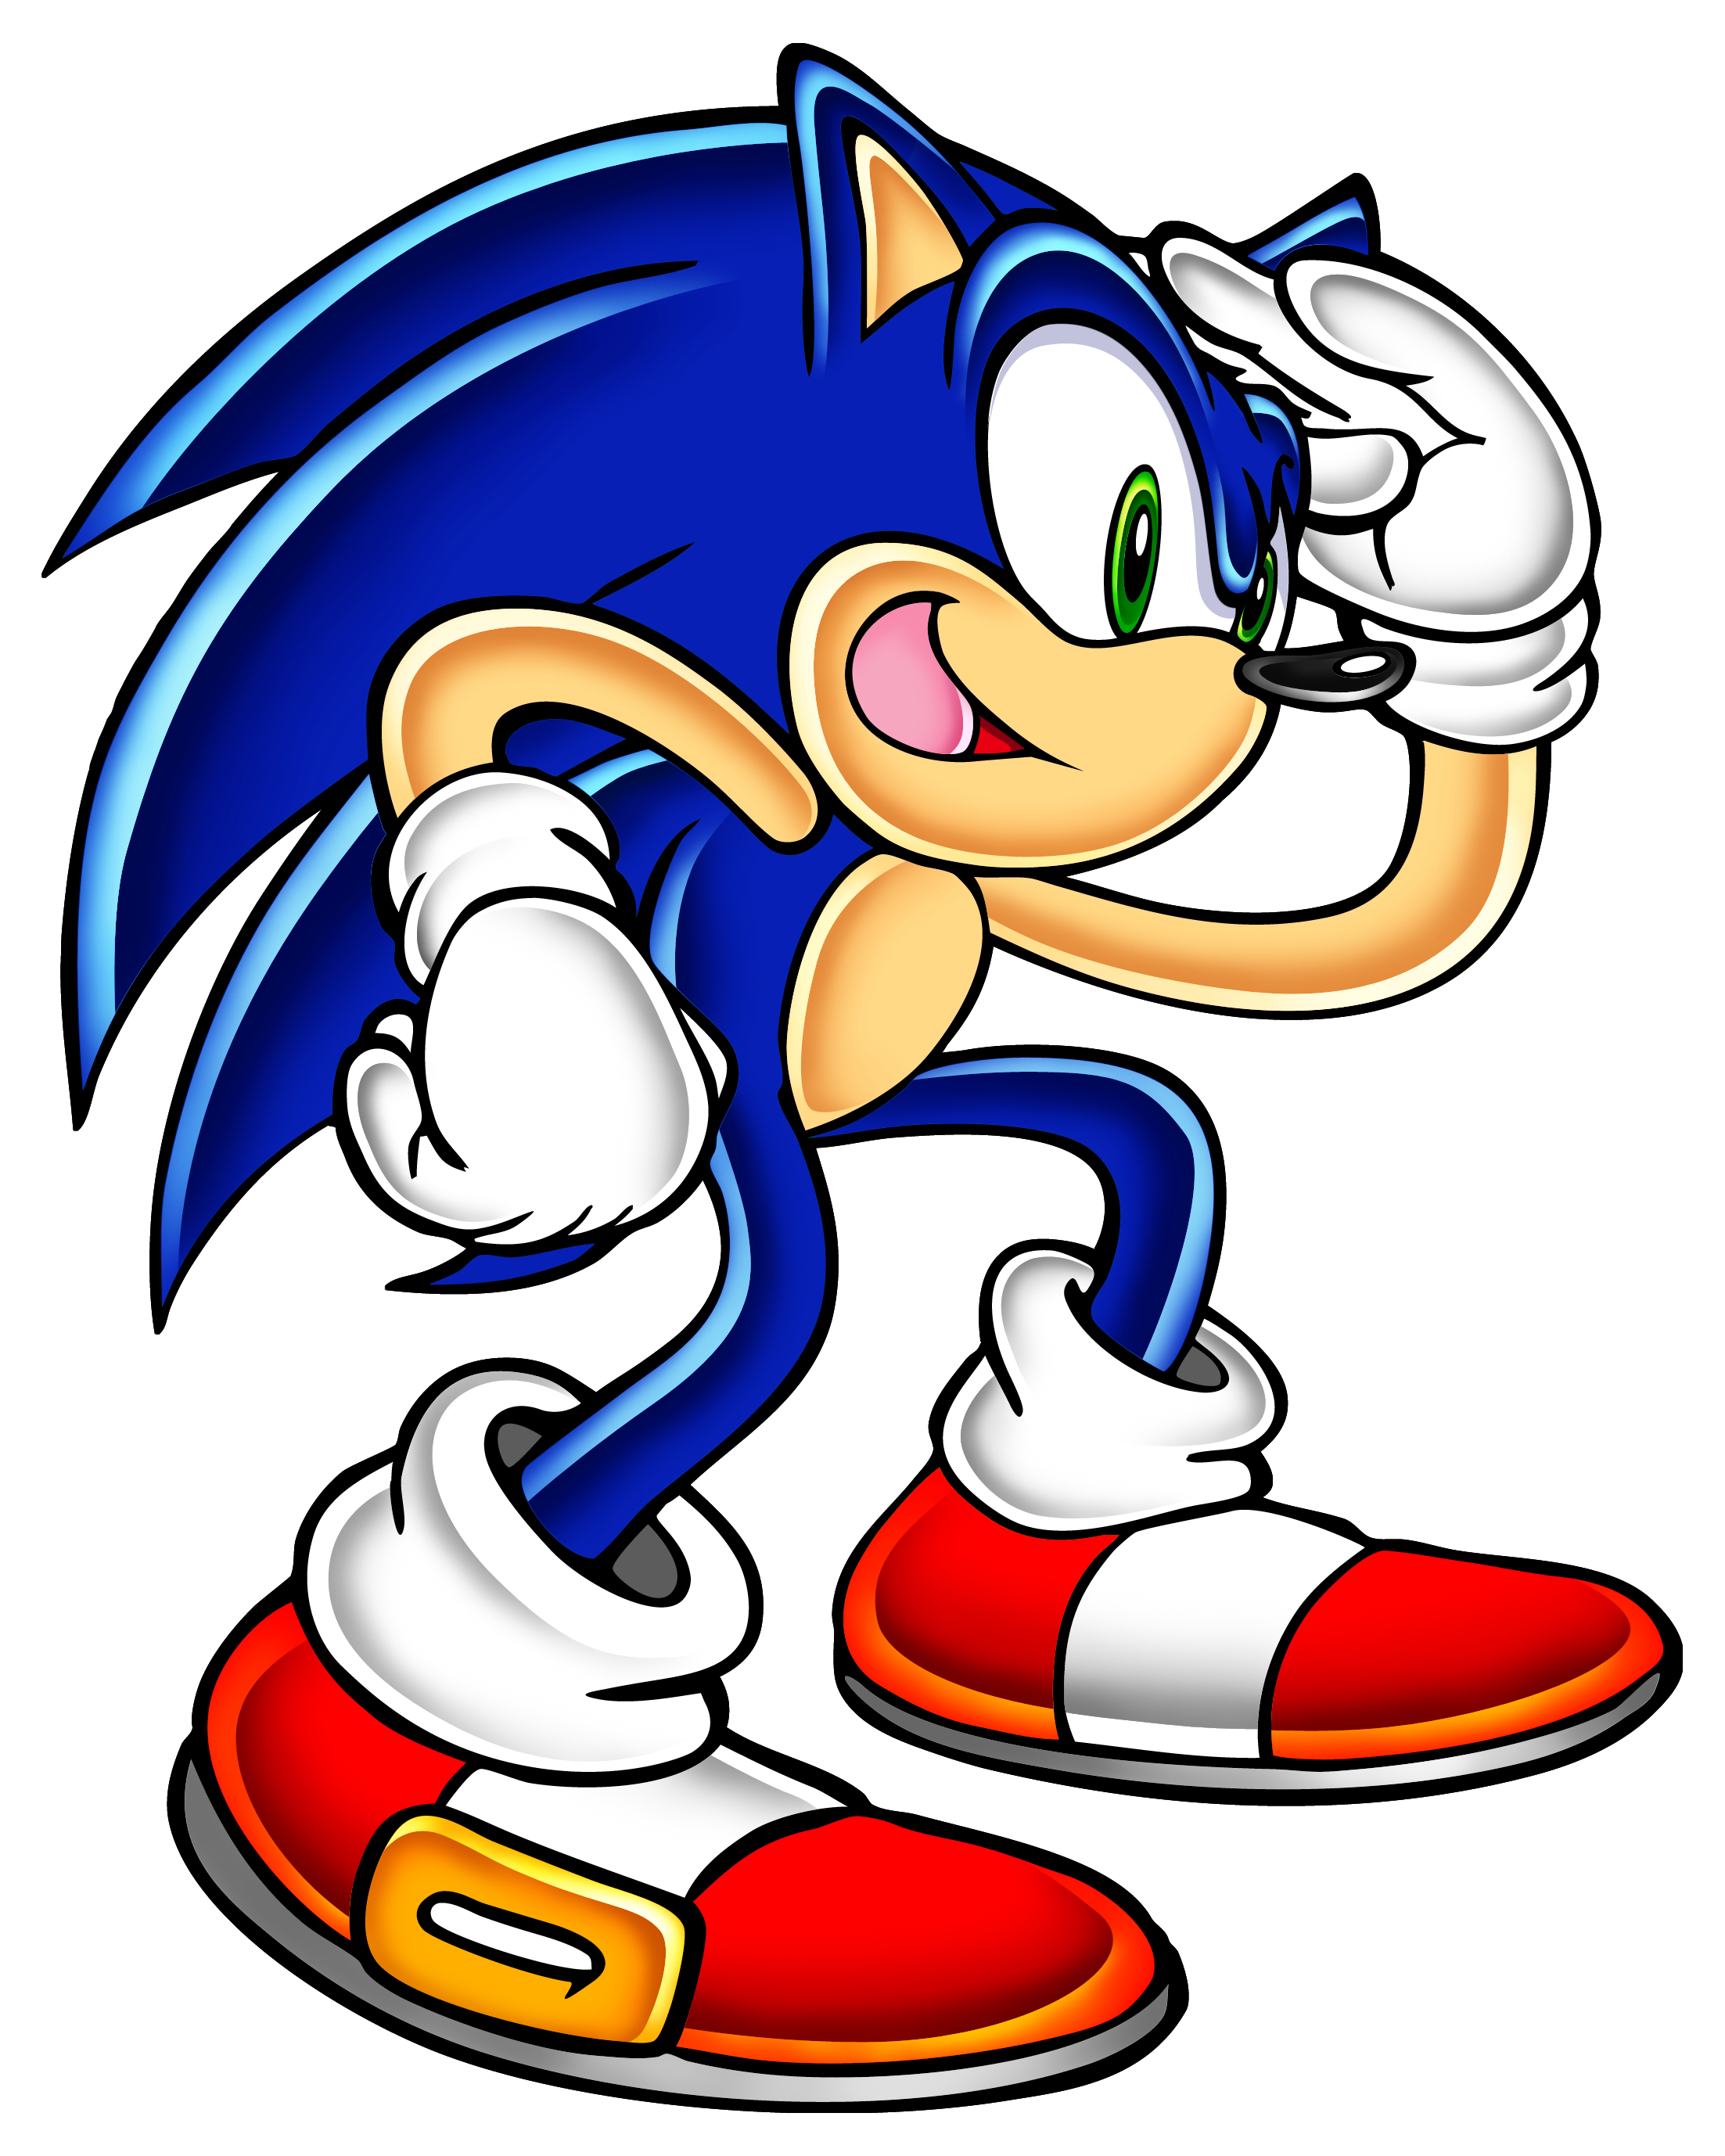 Image sa news network. Sonic png picture black and white